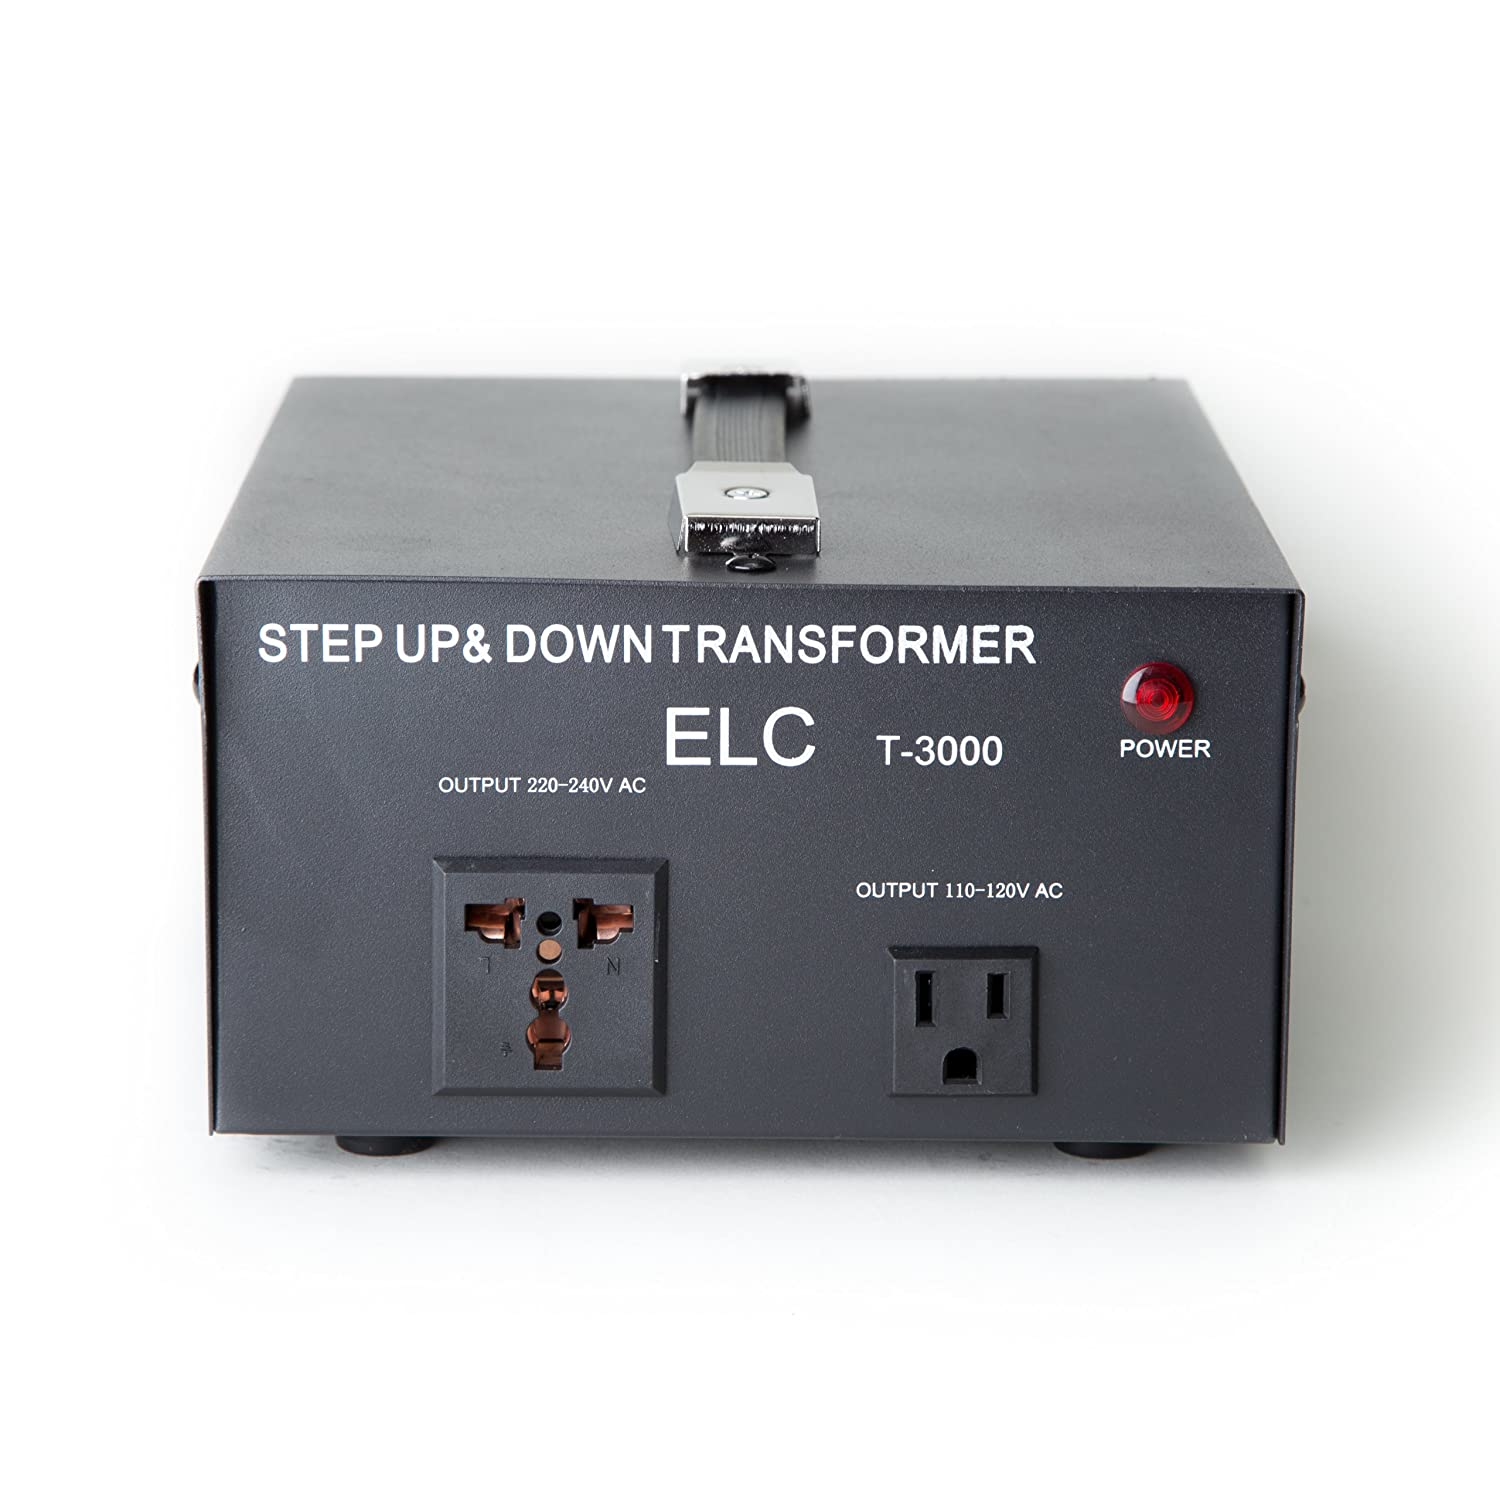 Amazon.com: ELC T-3000 3000-Watt Voltage Converter Transformer - Step  Up/Down - 110V/220V - Circuit Breaker Protection: Home Audio & Theater